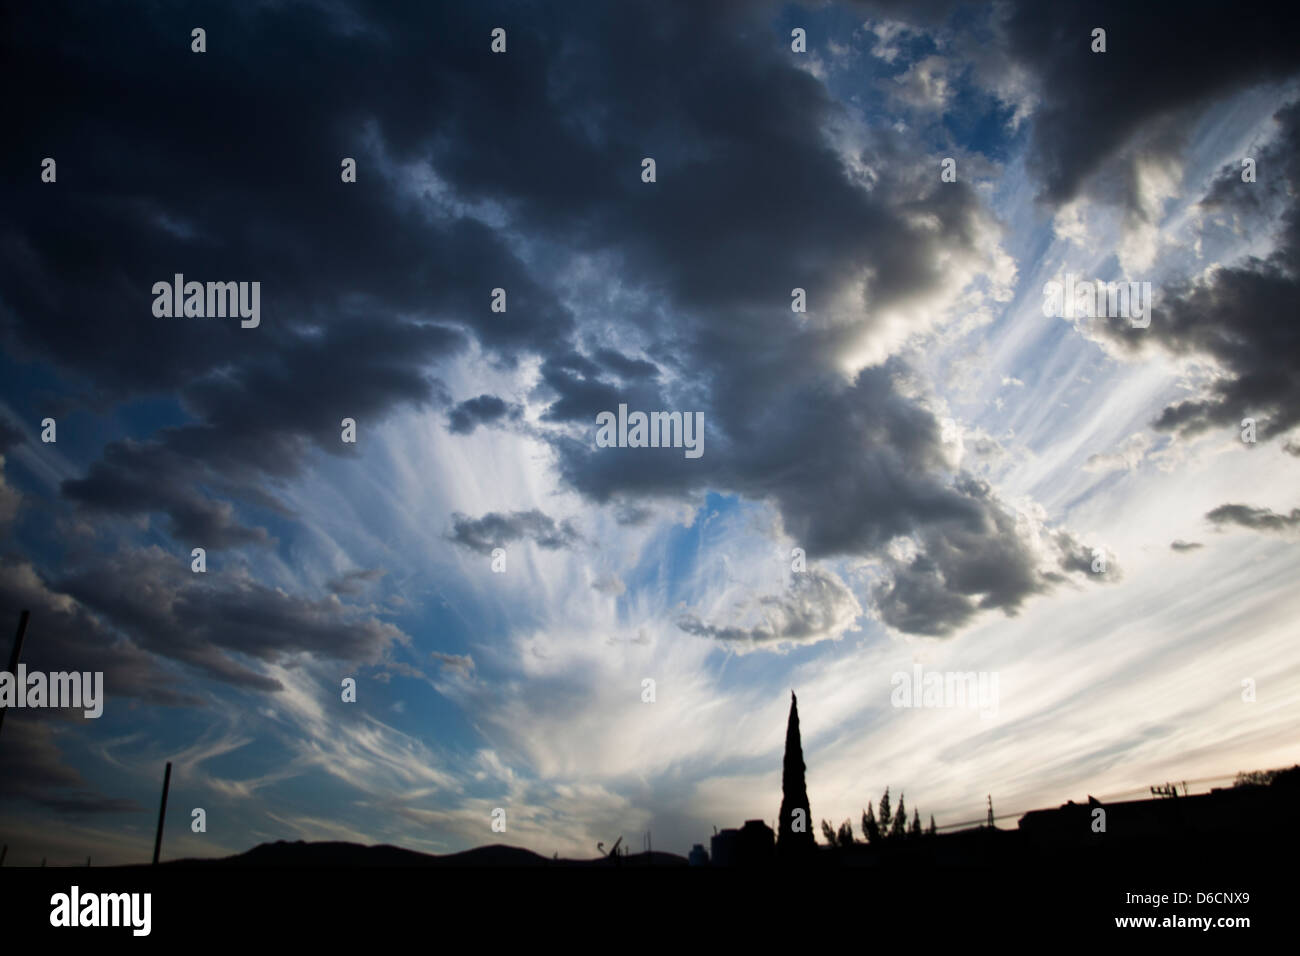 A striking sunset graces the Oaxacan sky in the winter months. - Stock Image